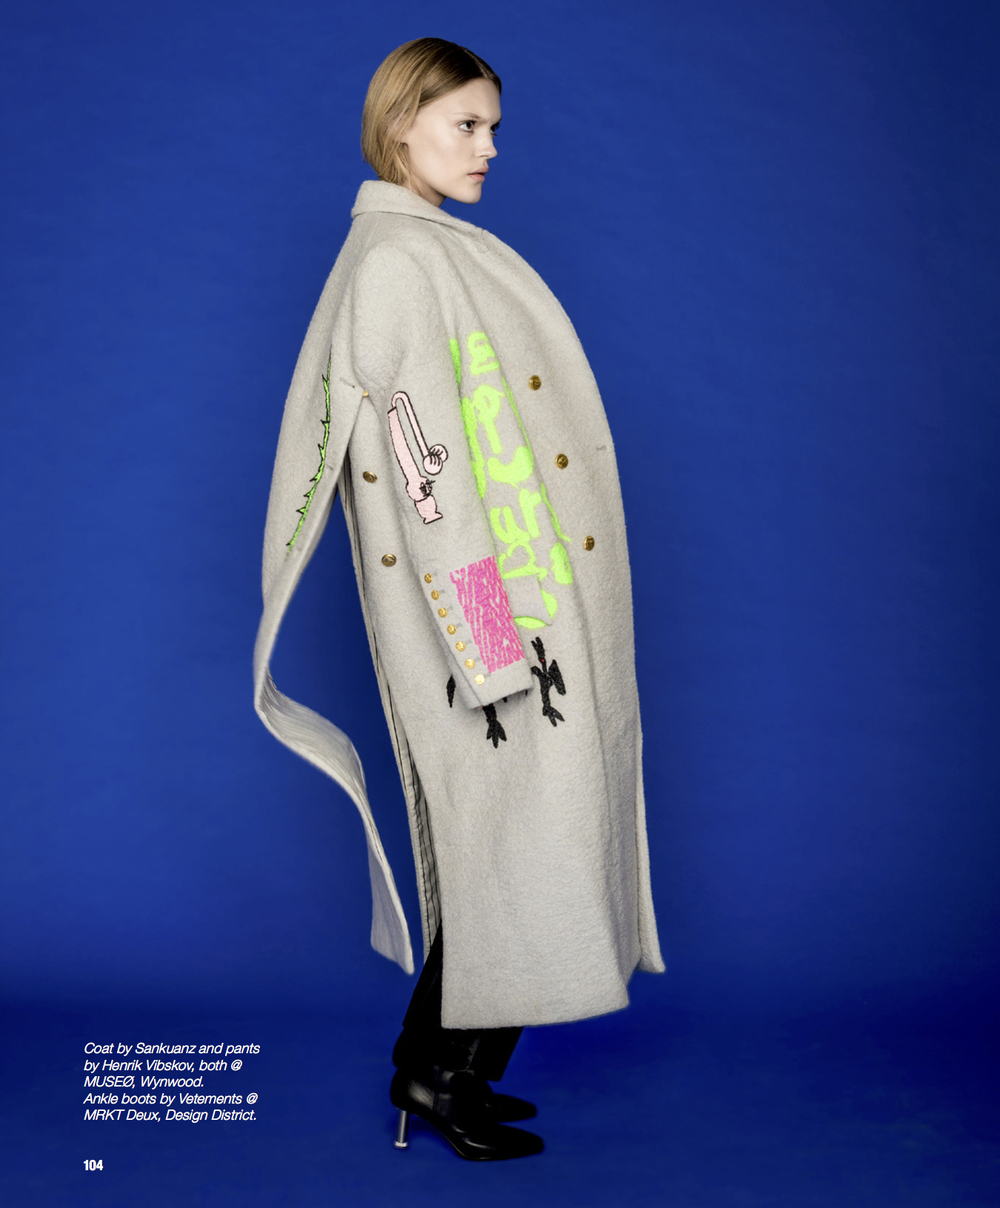 Deconstructed trench coat into a dress by Anne Sofie Madsen which is available at MUSEØ.